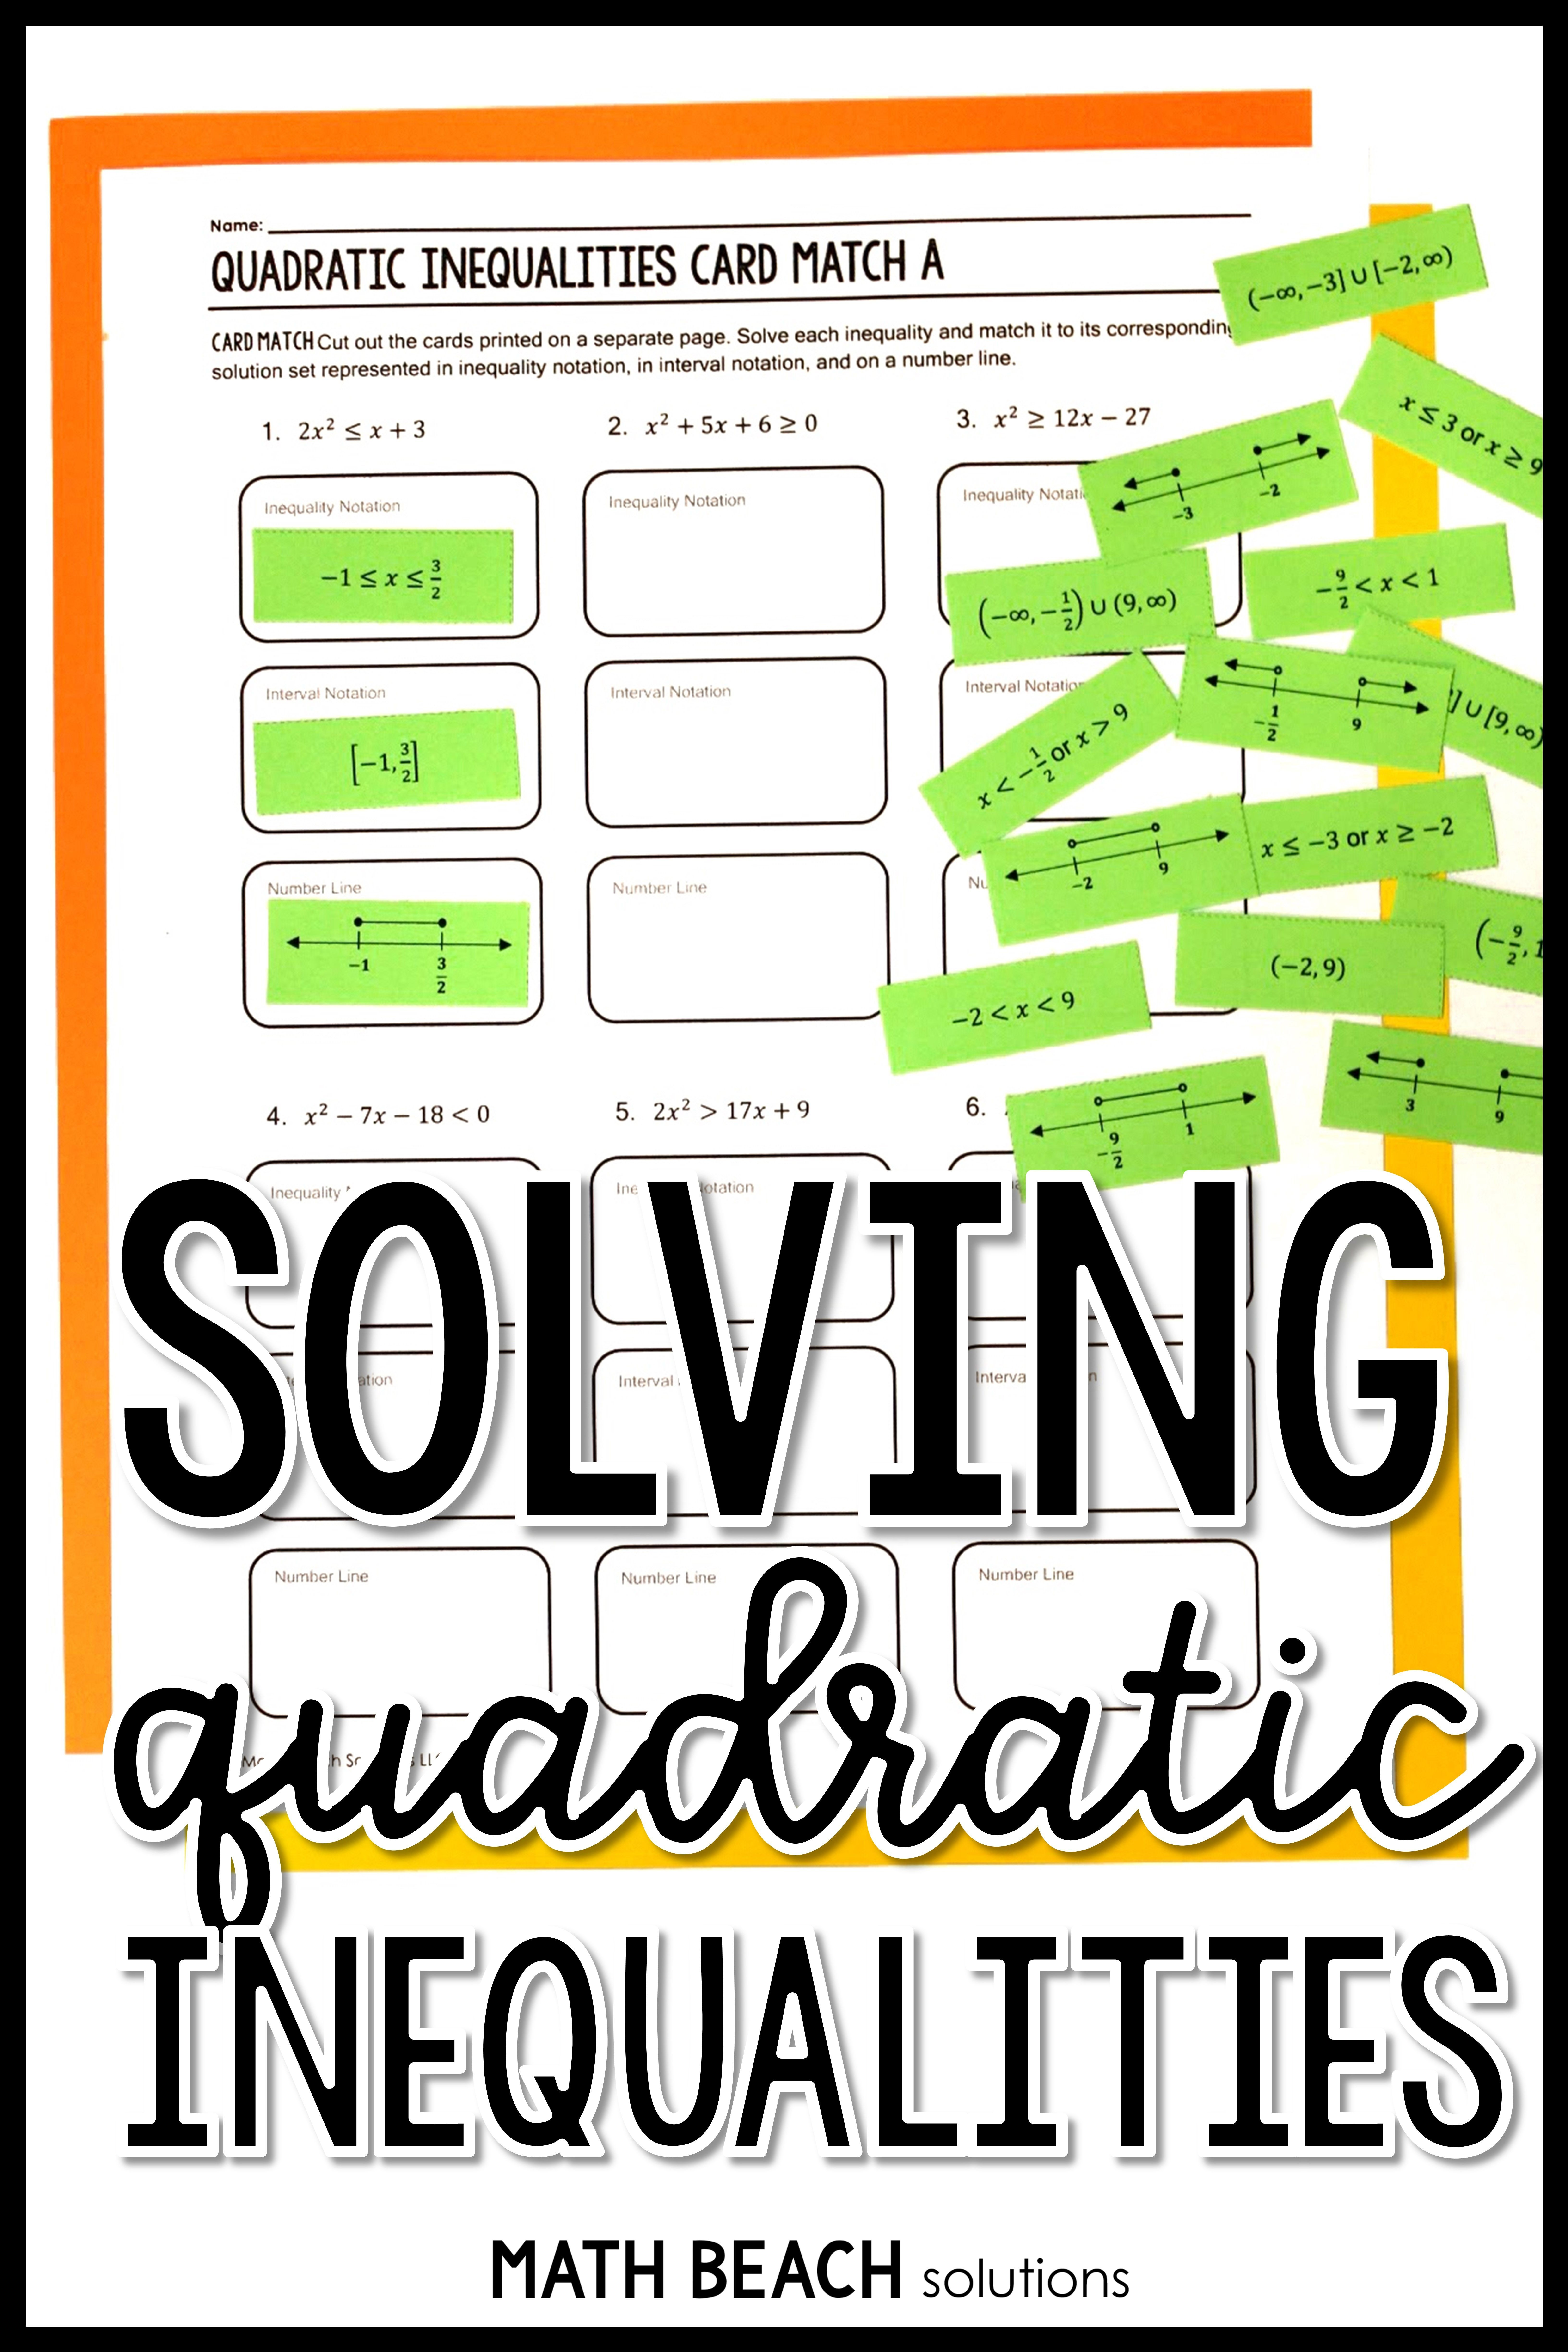 Encourage Connections Between Quadratic Inequalities And